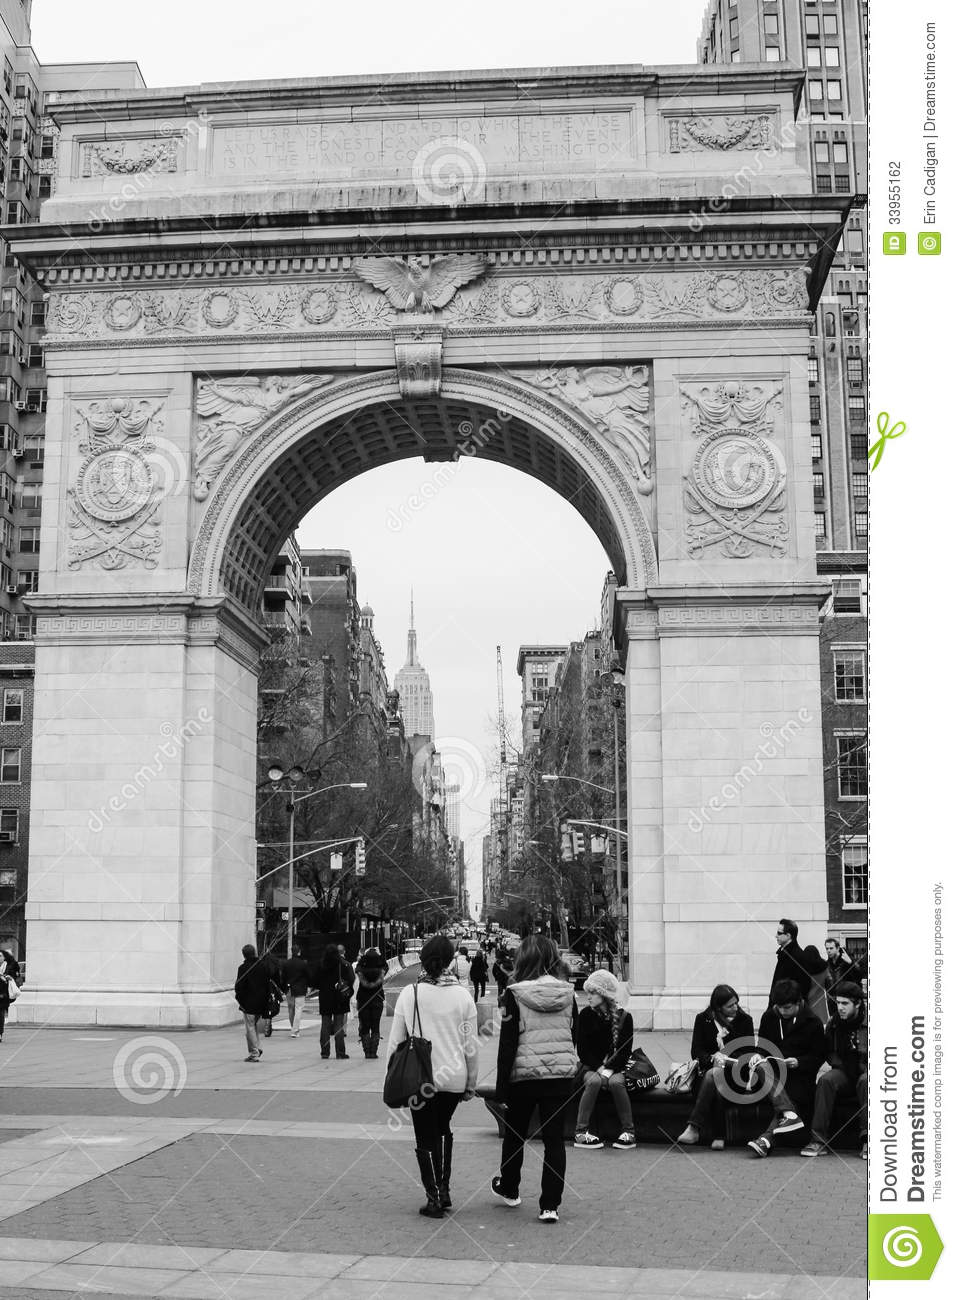 Washington square park new york city editorial for What can you do in new york city